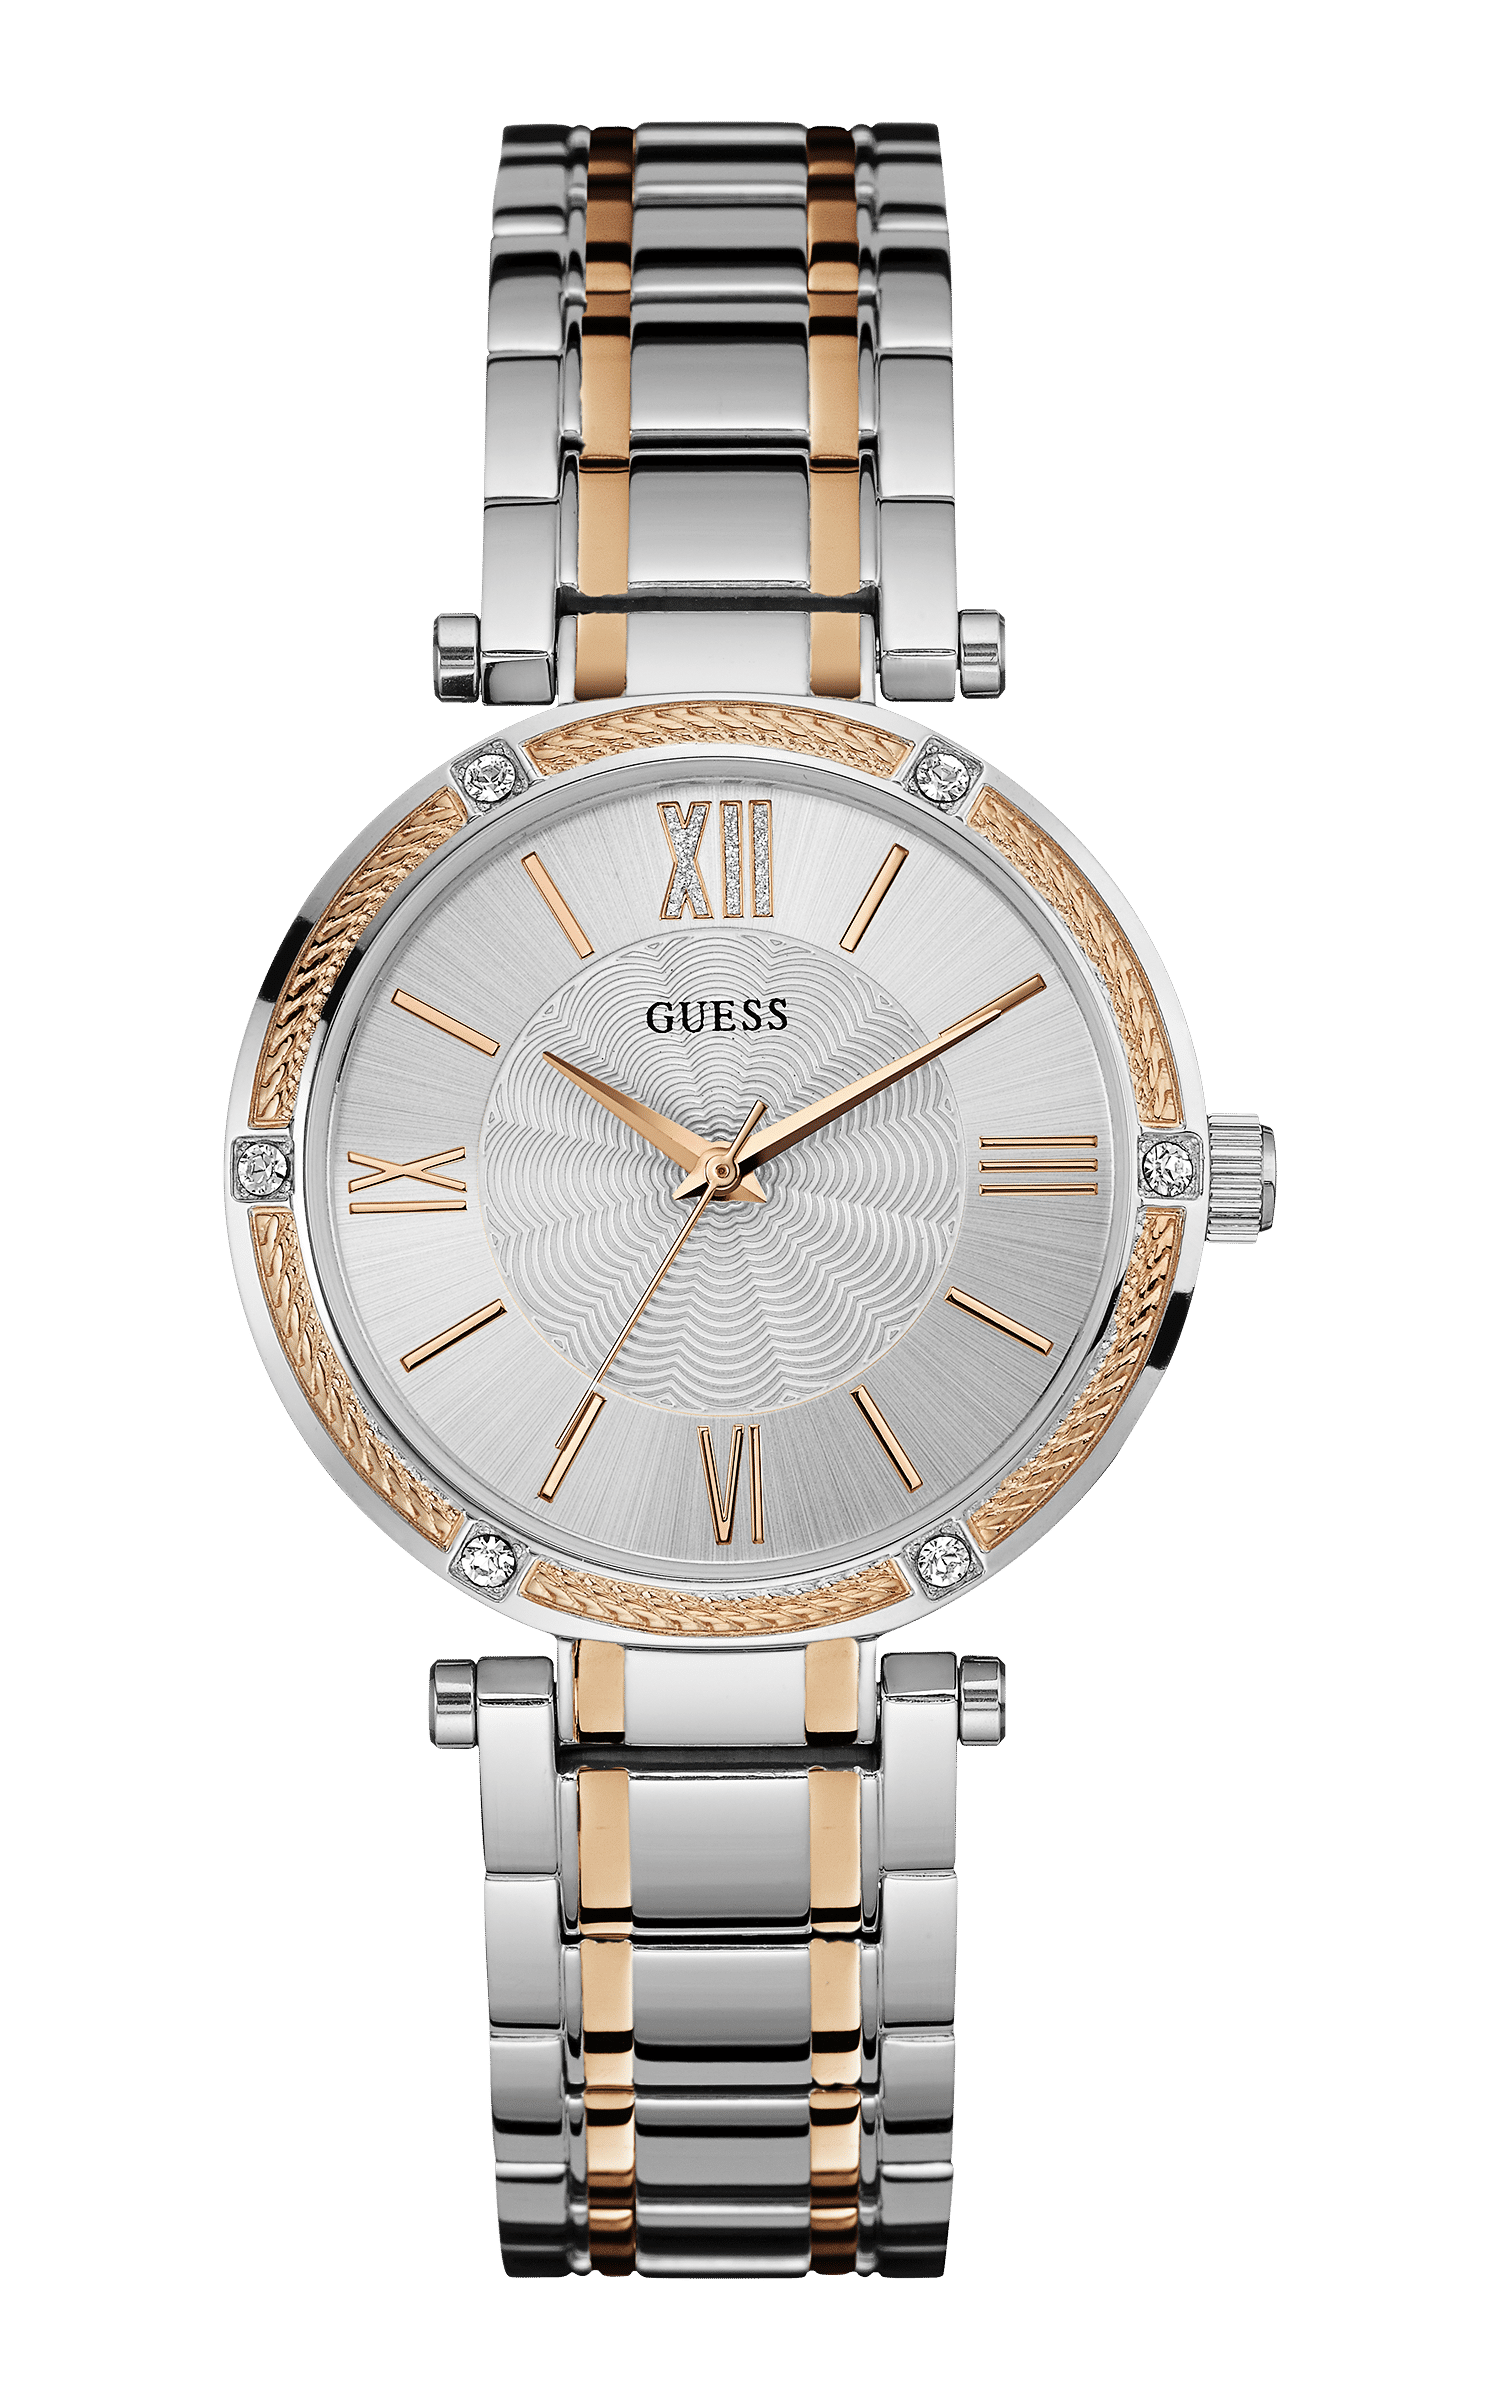 Guess Silver Tone-rose Gold Tone Park Ave Watch - Guess Watches